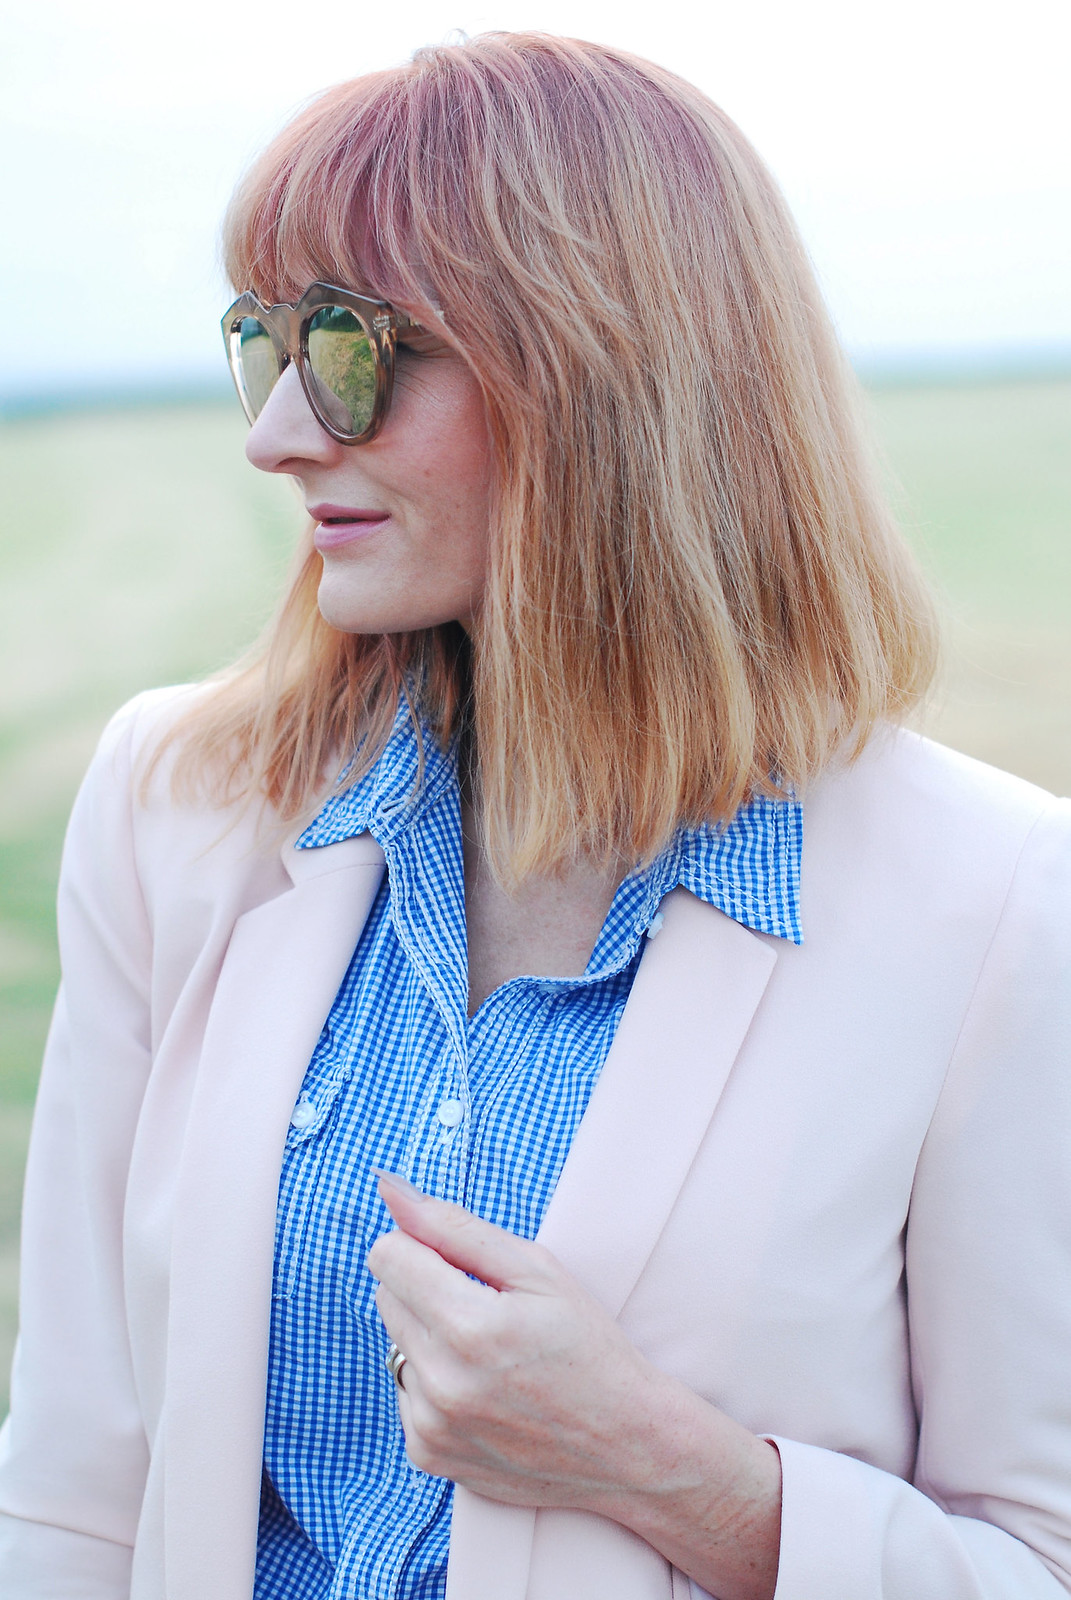 Summer workwear: Pale pink trouser suit, blue gingham shirt | Not Dressed As Lamb